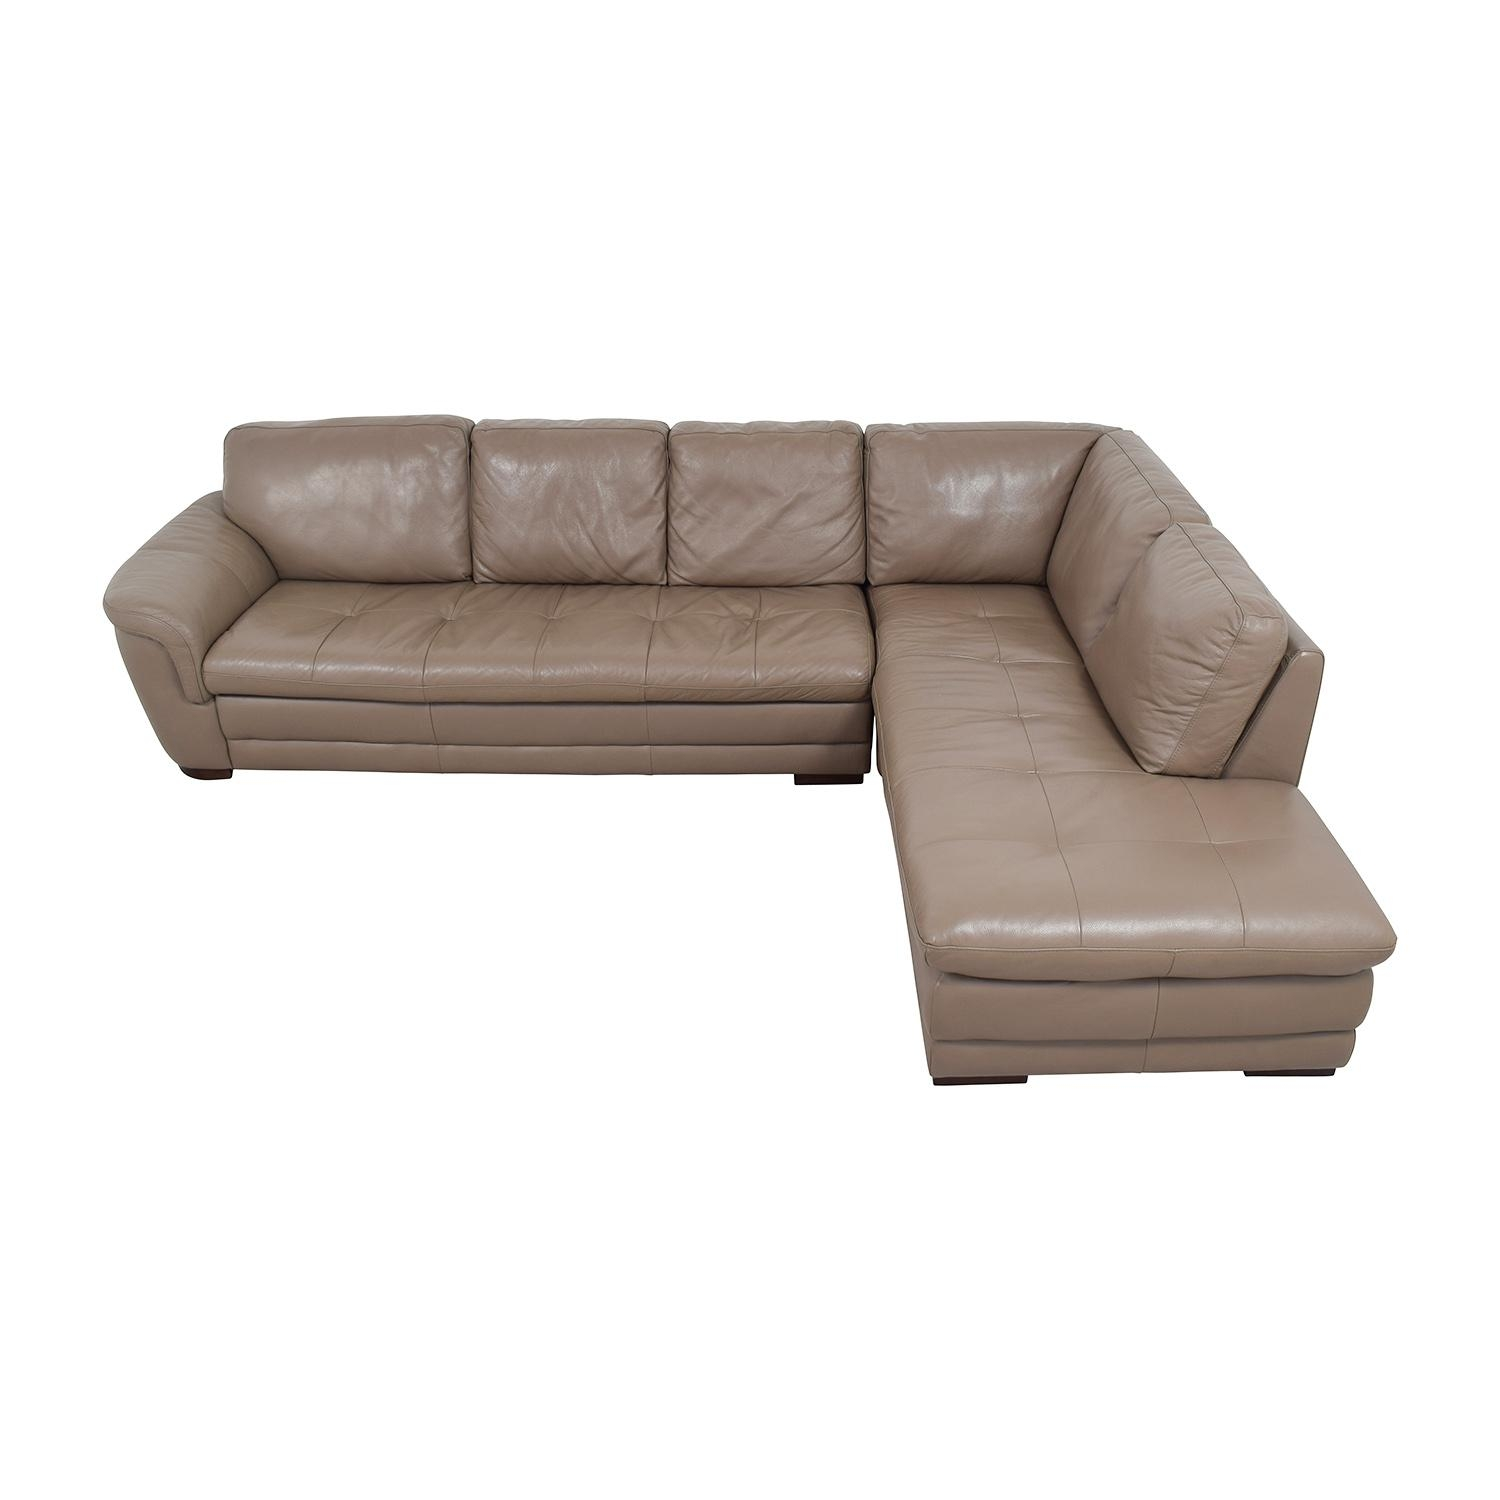 pink tufted sofa for sale hotel istanbul bar 20 best collection of used sectionals ideas